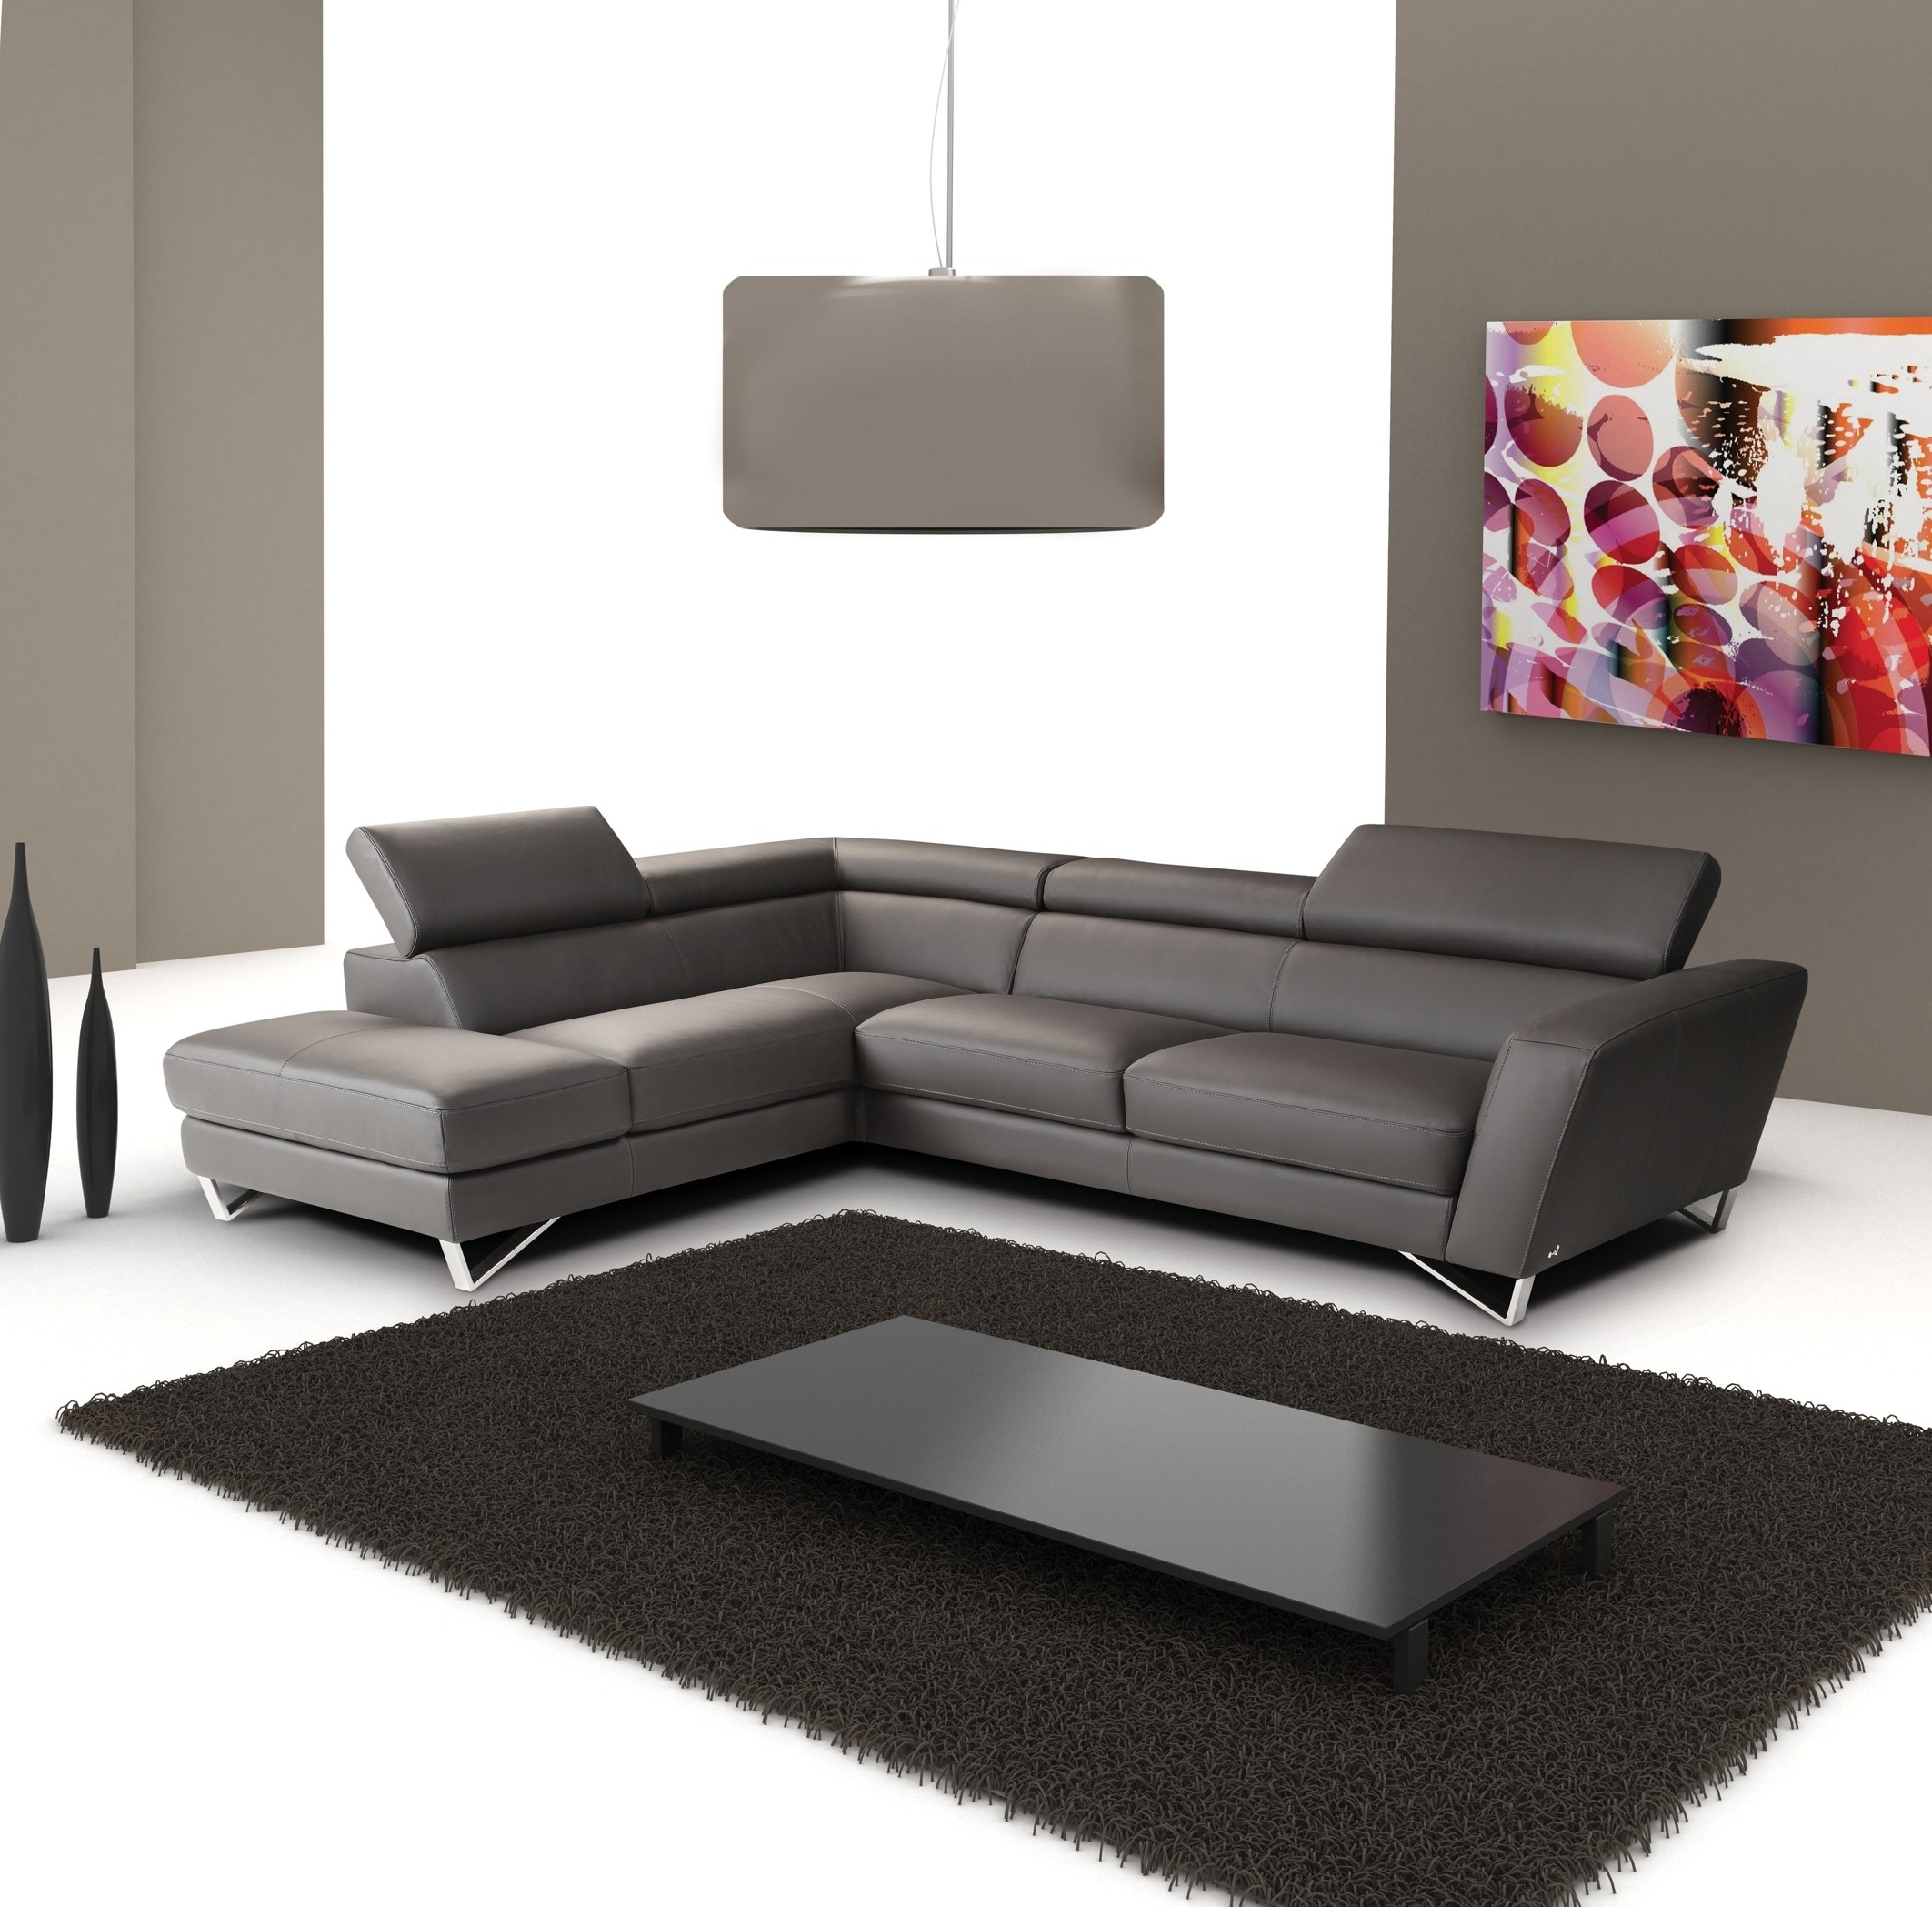 Sectional Modern Sofa Interior White Button Leather Furniture Intended For 2018 Vancouver Bc Canada Sectional Sofas (View 10 of 15)